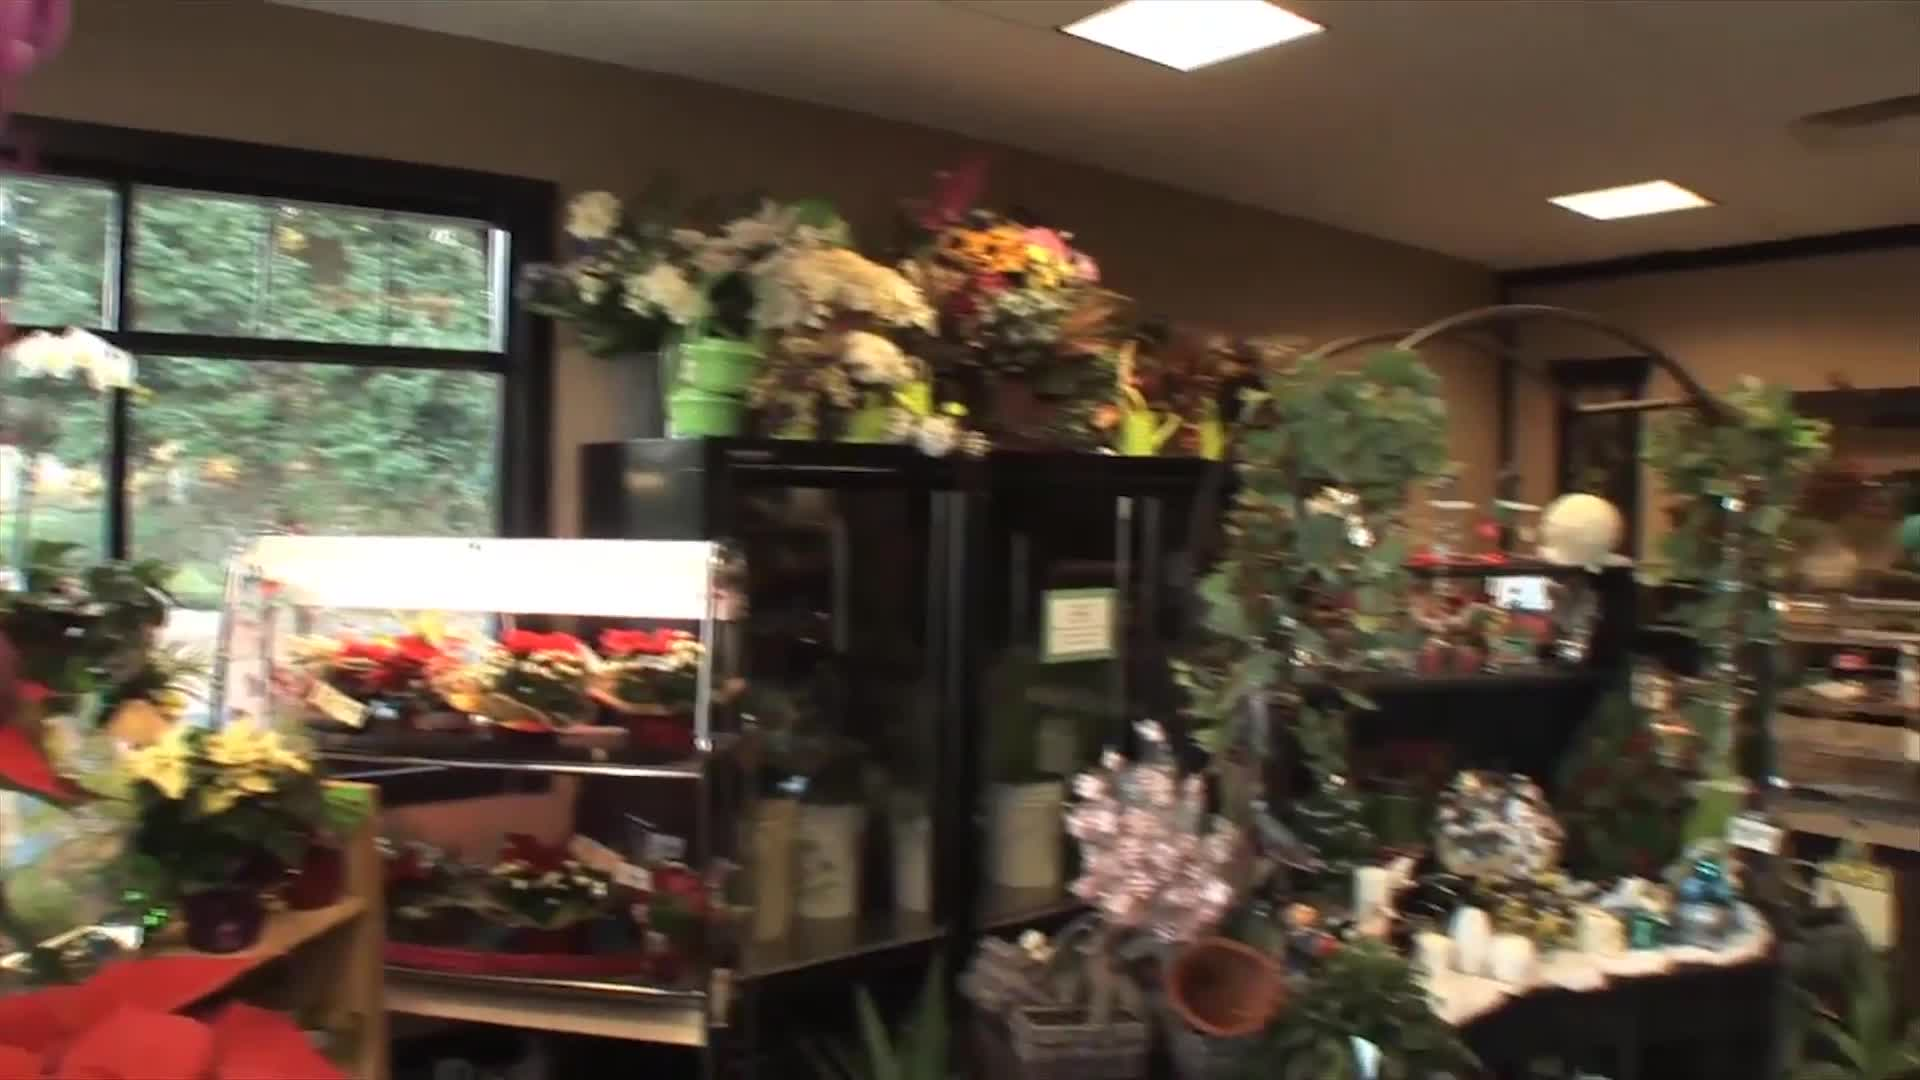 That Flower Shop on Vedder - Wedding Planners & Wedding Planning Supplies - 604-824-9121